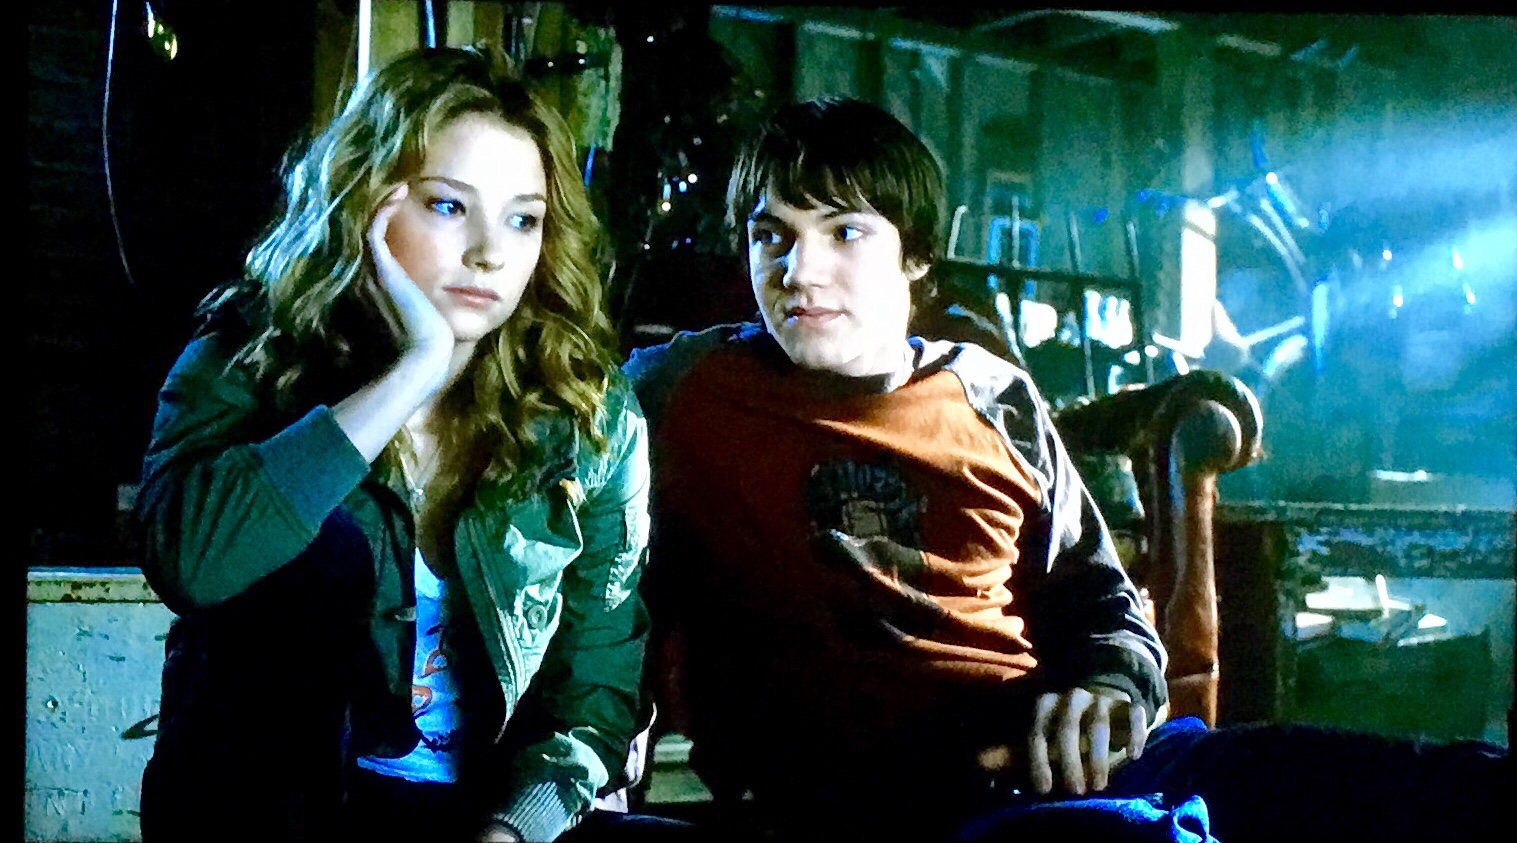 Dane and Julie (Haley Bennett) discuss the dangers of their open hole.